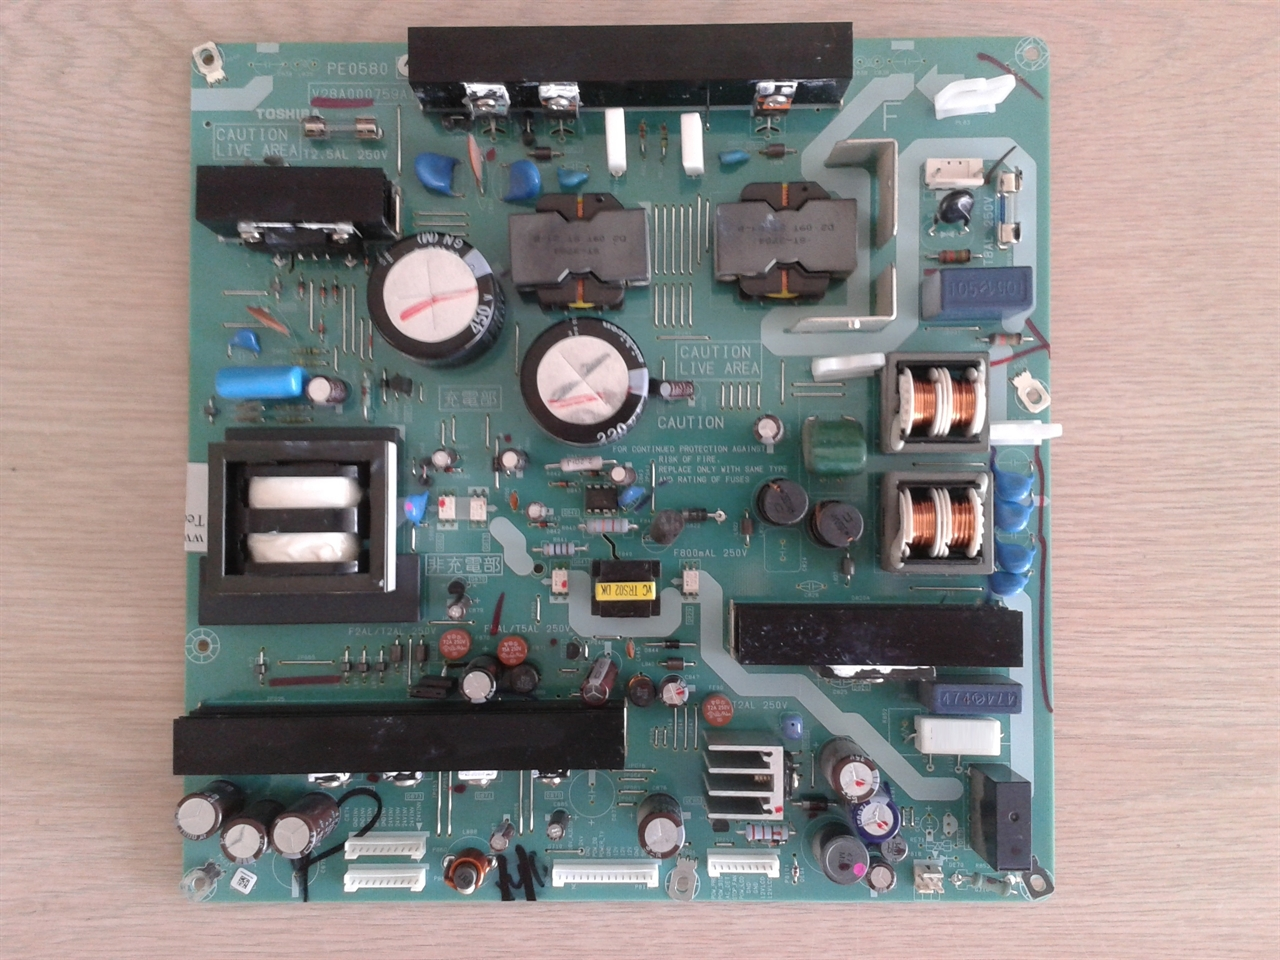 Toshiba Circuit Board Repair User Guide Manual That Easy To Read Printed 42xv540u Power Supply Service Dead Tv Or Dark Rh Coppelltvrepair Com Hot Tub Cleaning Solution